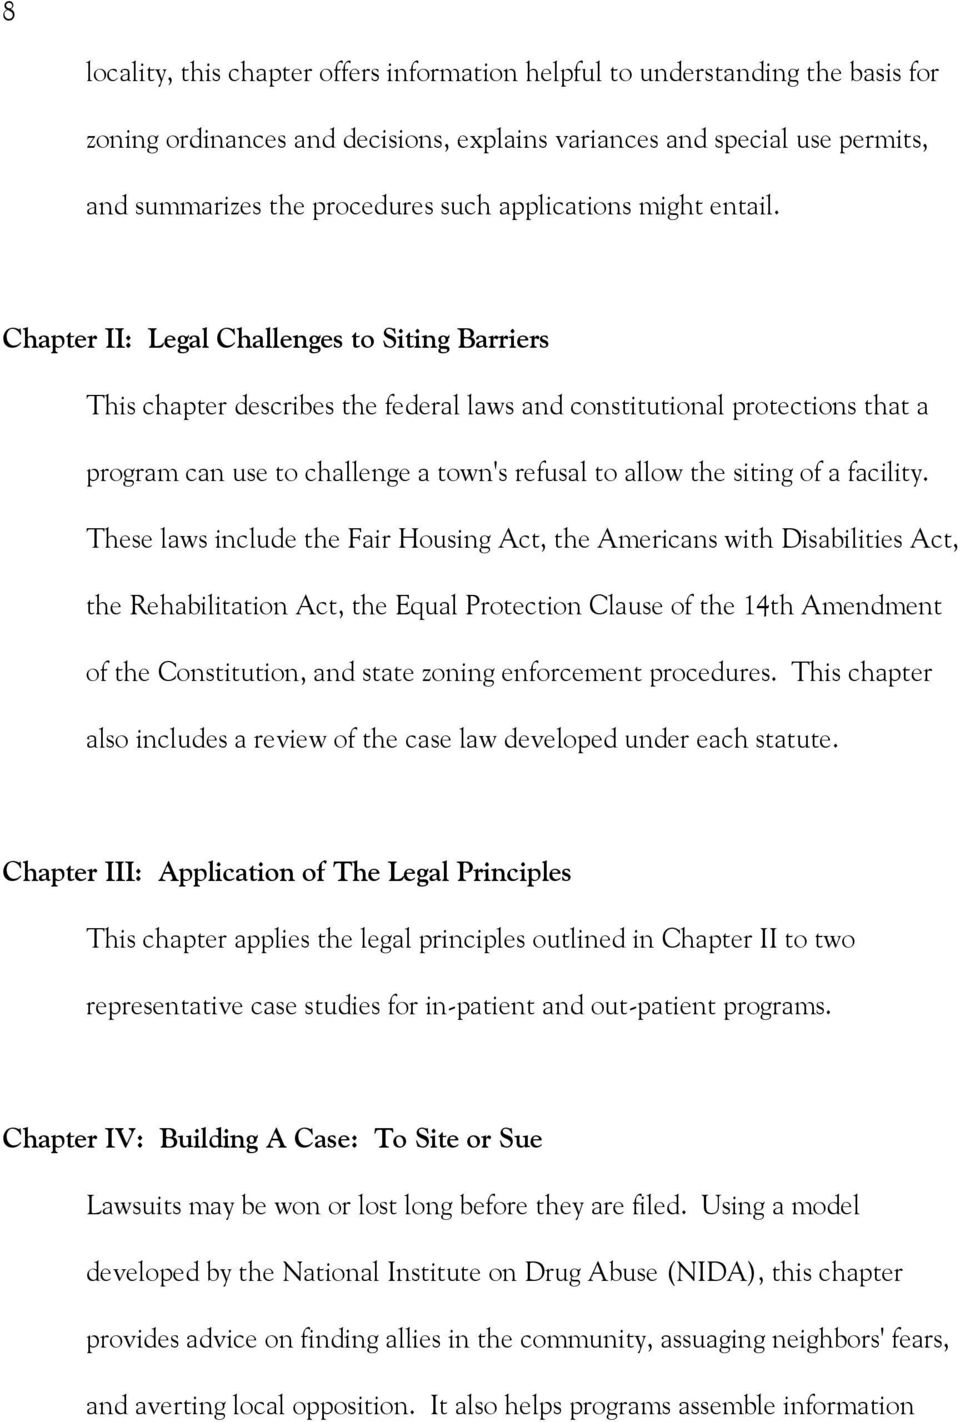 Chapter II: Legal Challenges to Siting Barriers This chapter describes the federal laws and constitutional protections that a program can use to challenge a town's refusal to allow the siting of a